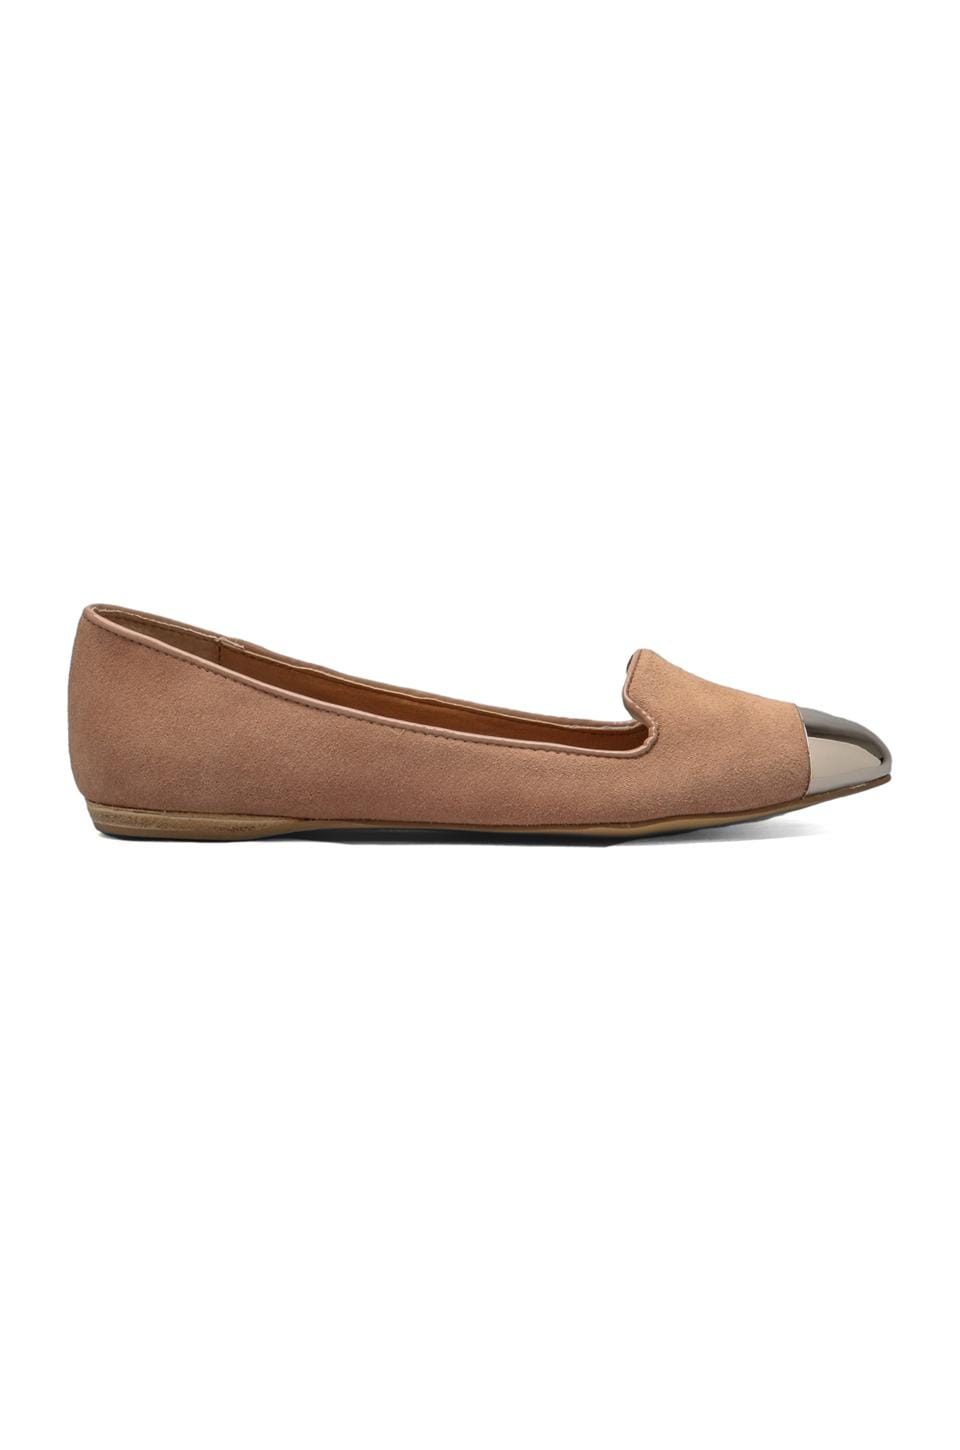 Dolce Vita Lunna Flat in Blush